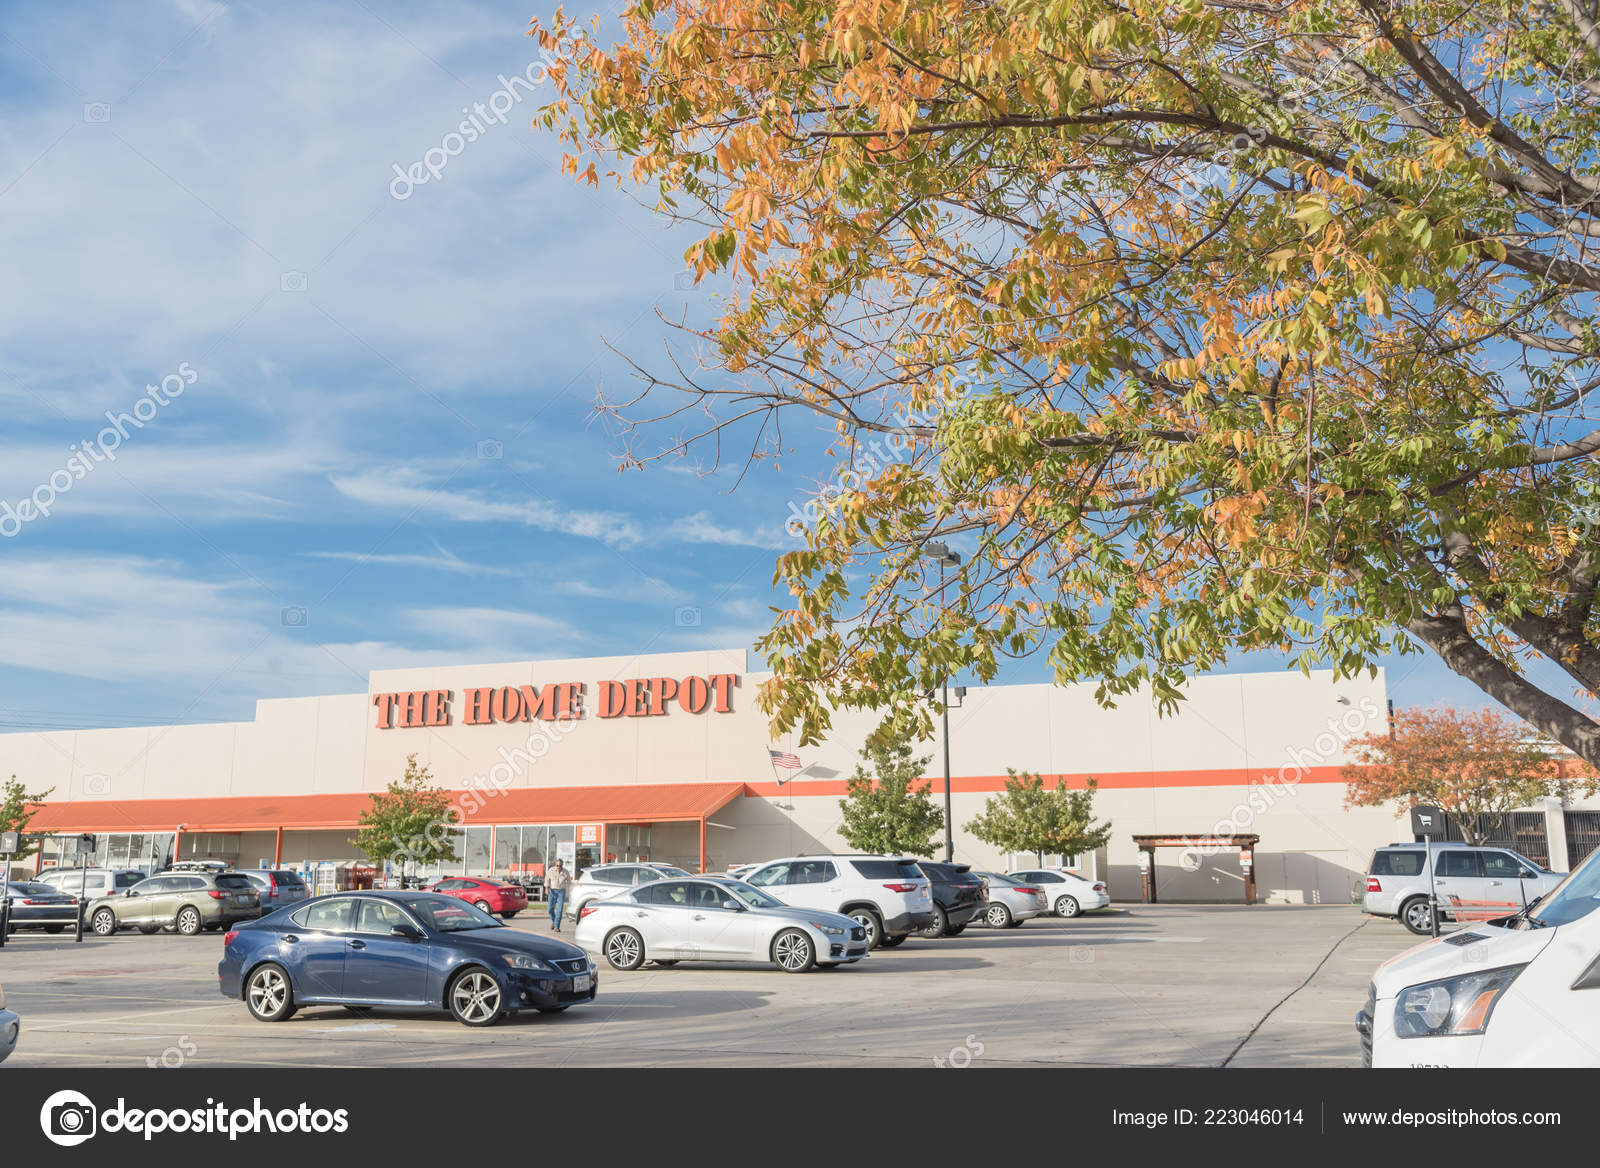 Irving Oct 2018 Home Depot Exterior Storefront Outdoor Parking Lots Stock Editorial Photo C Trongnguyen 223046014